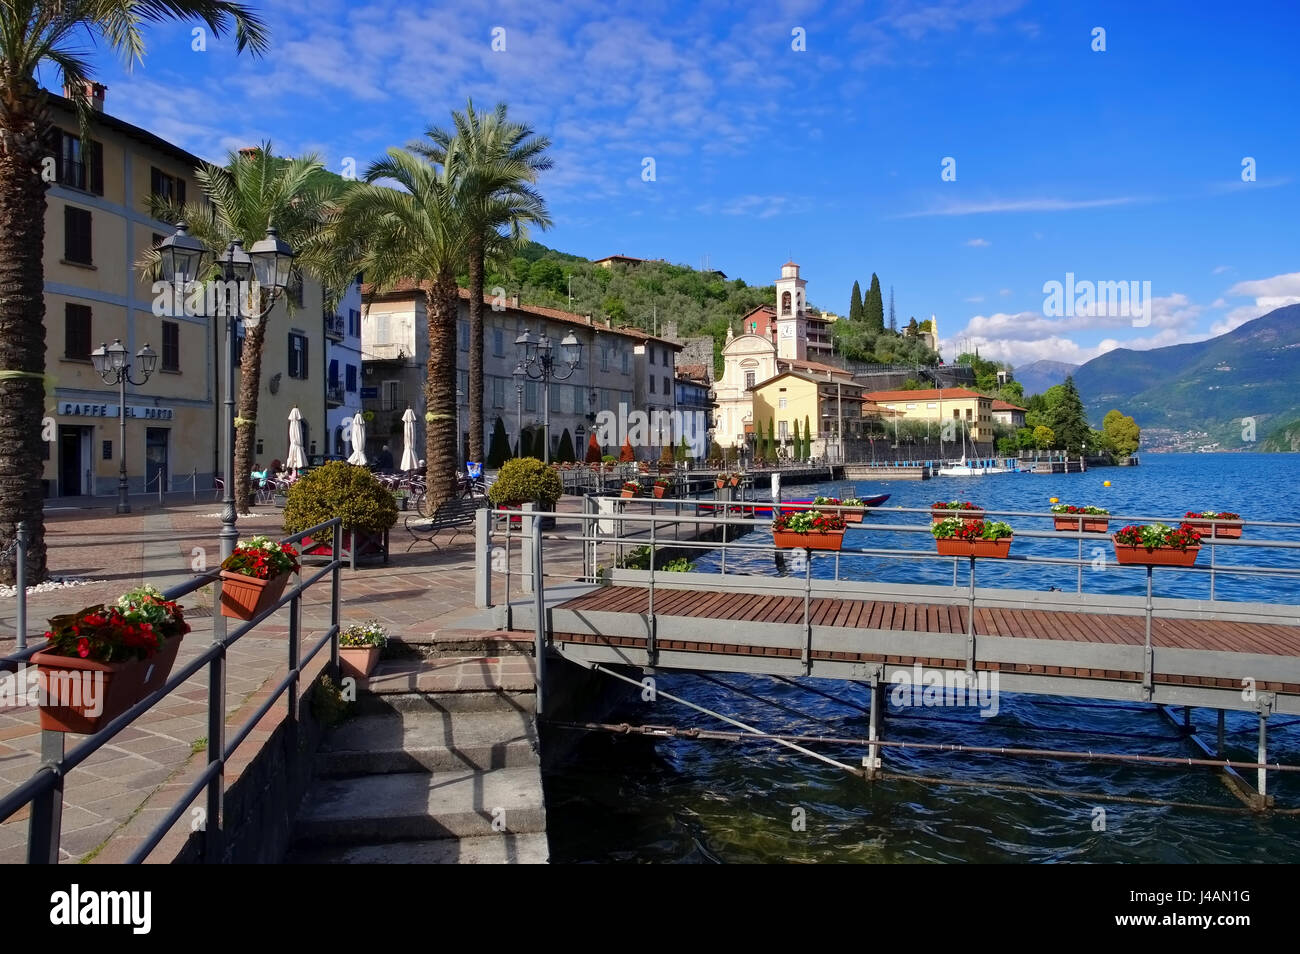 Riva di Solto Iseo lake, Lombardy in Italy Stock Photo